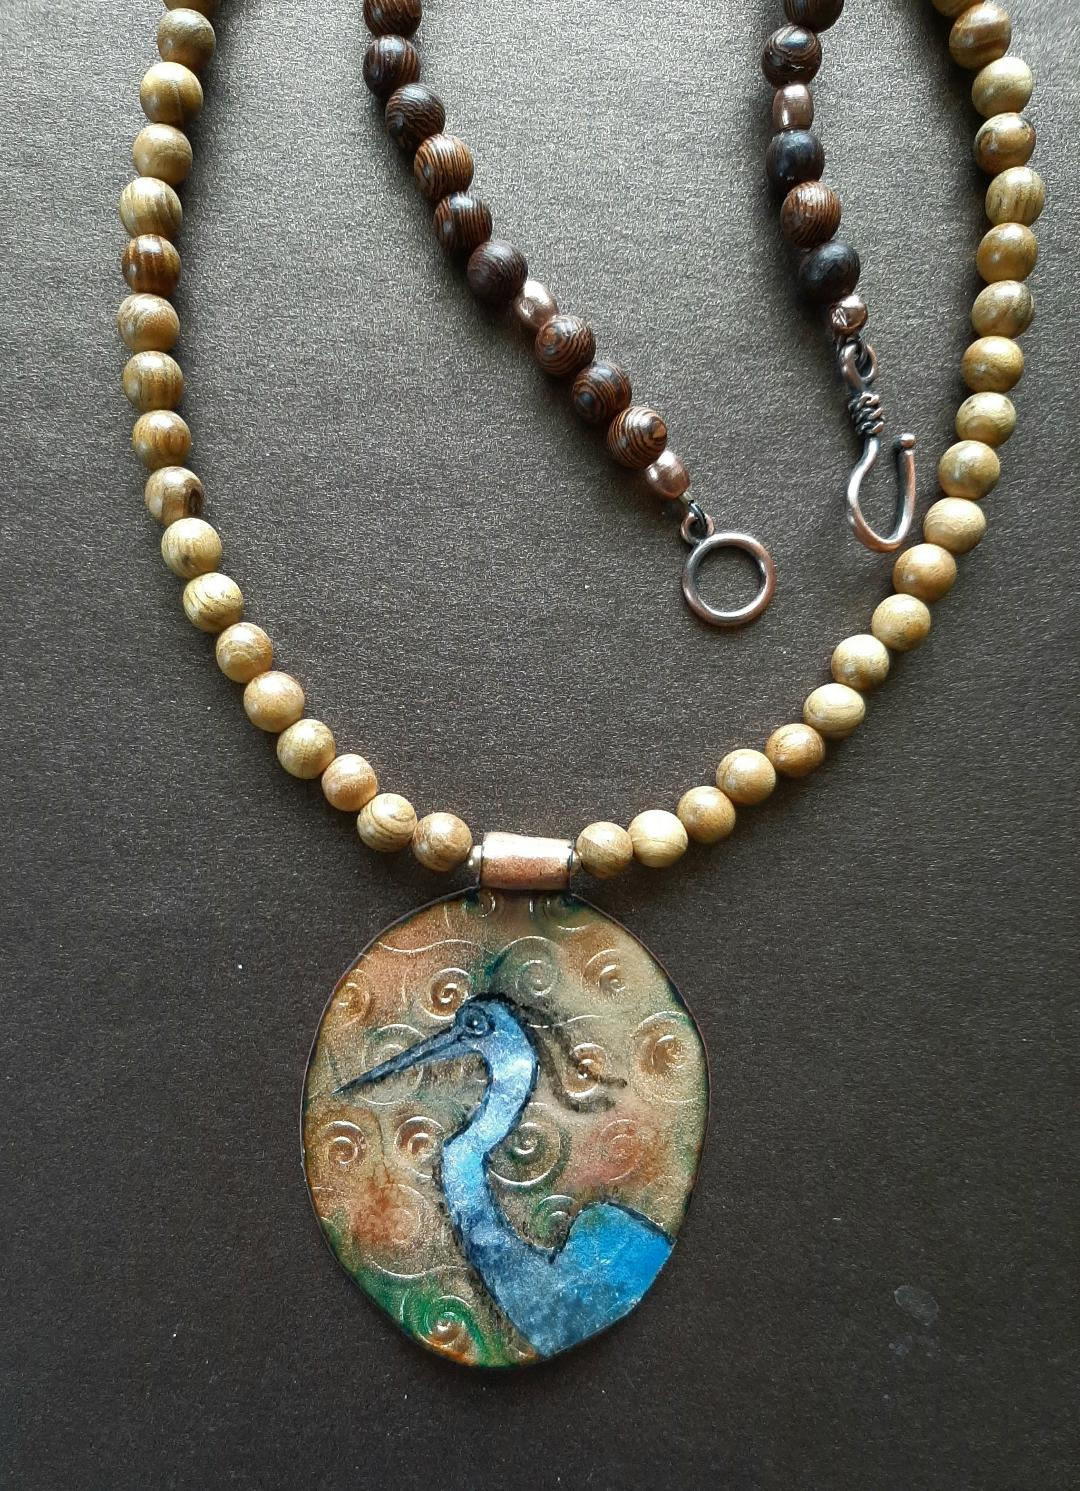 Blue Heron Necklace with Copper Enamel